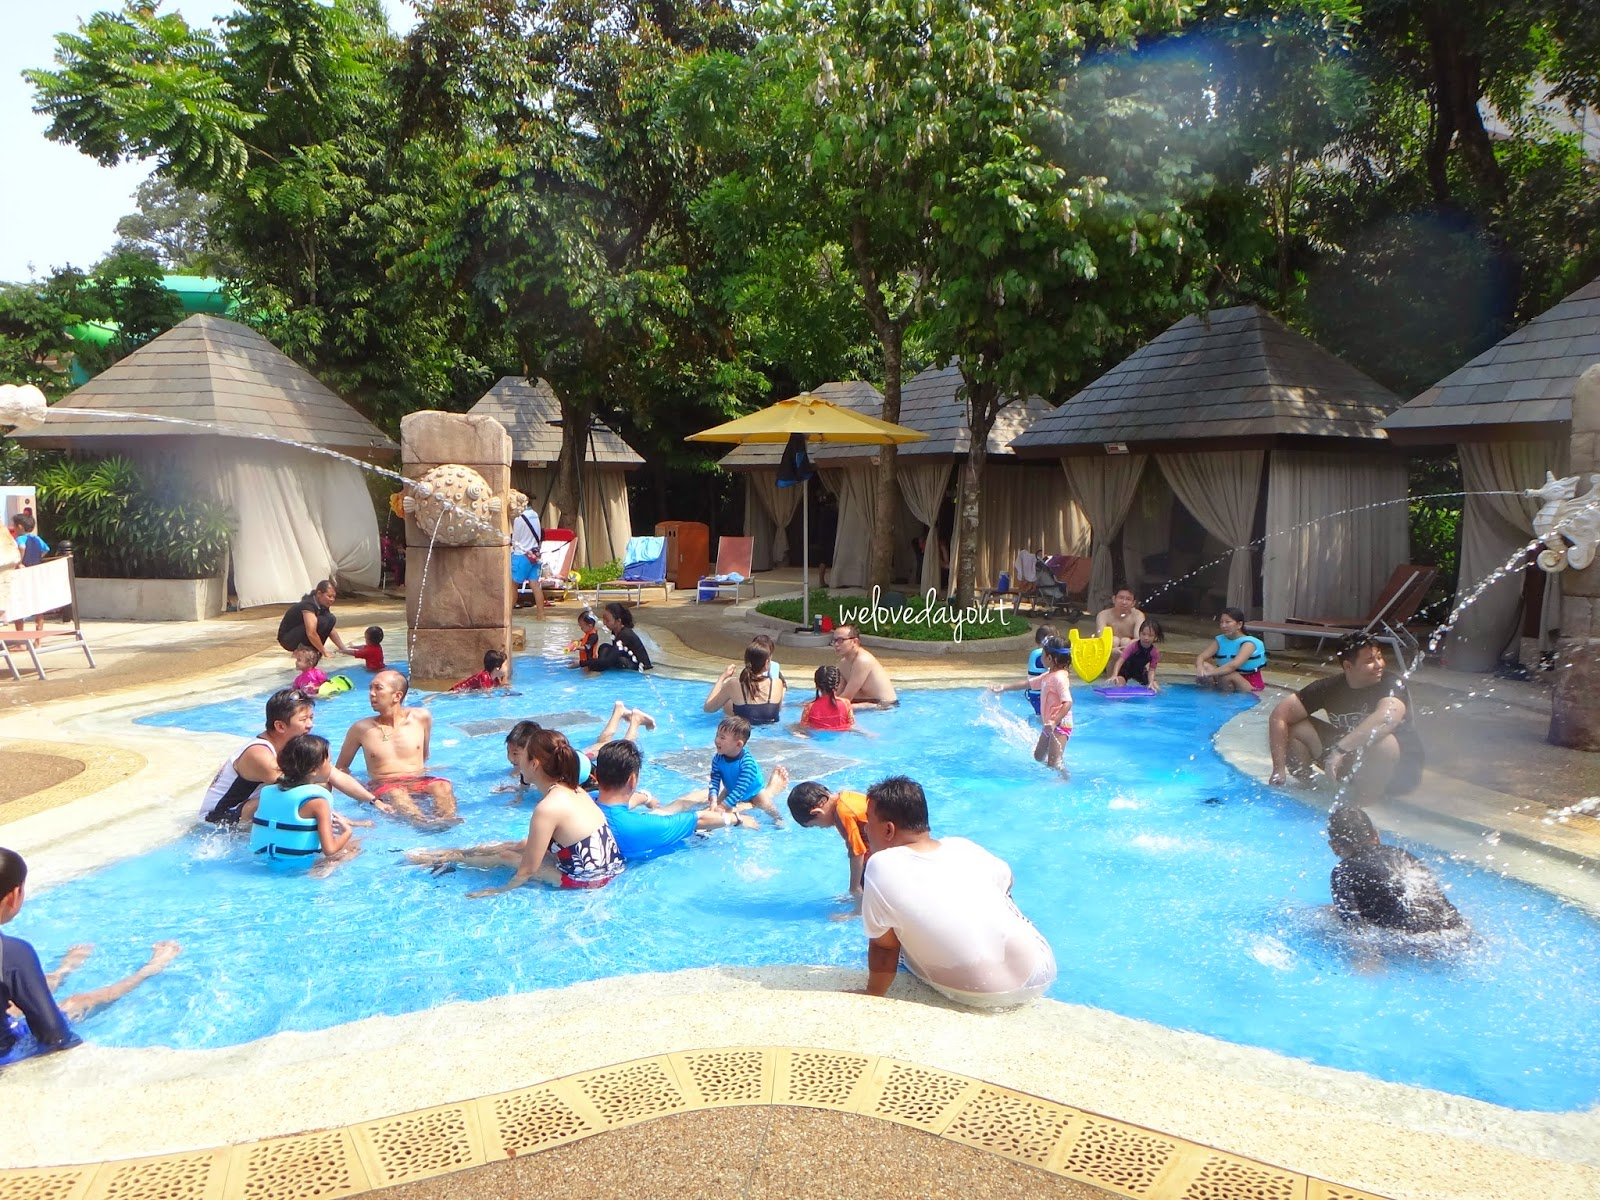 Welovedayout Family Fun At Adventure Cove Waterpark Resorts World Singapore Et Tiket Park Toddlers Having Seahorse Hideaway In